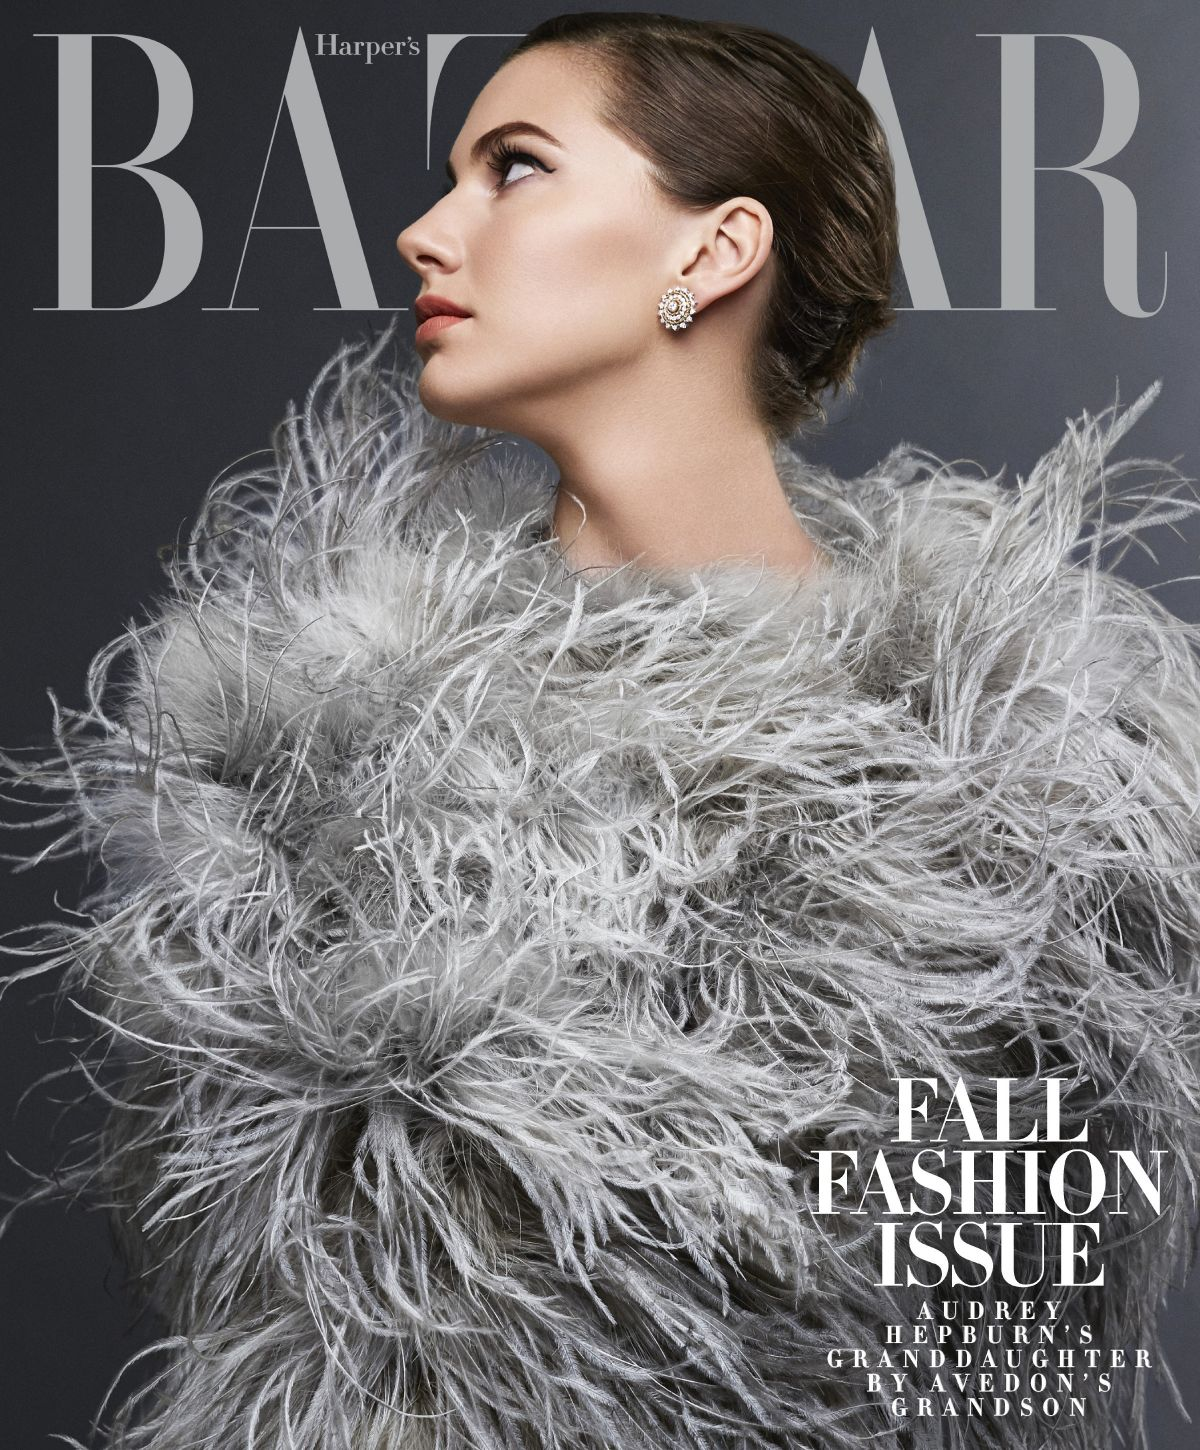 EMMA FERRER on the Cover of Harper